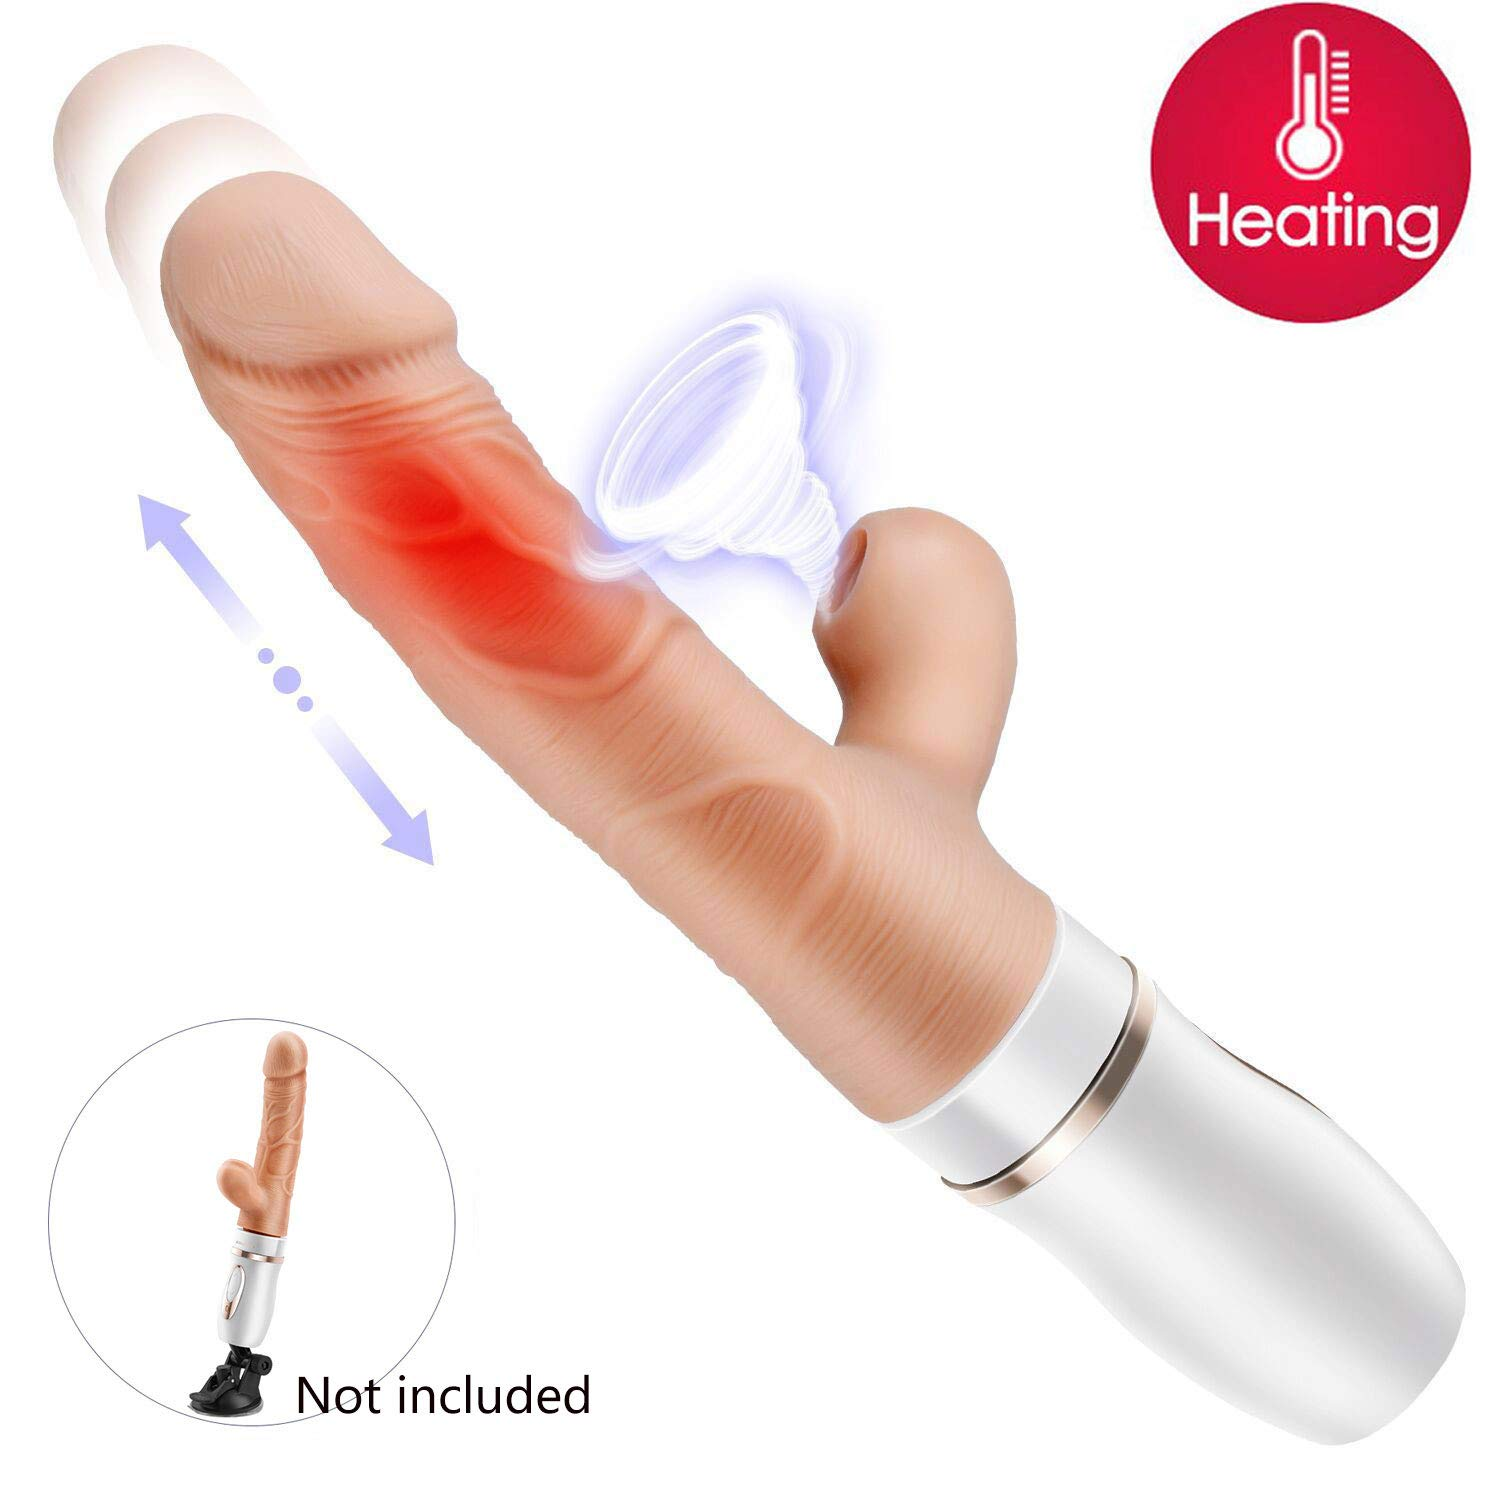 Heating Thrusting Sucking Vibrator G-spot Dildo with 10 Vibrating Modes 3 Thrusting Speed Imitating Oral Sex Movements of a Lover, EROCOME Clit Nipples Stimulator Massager for Women or Couple Fun